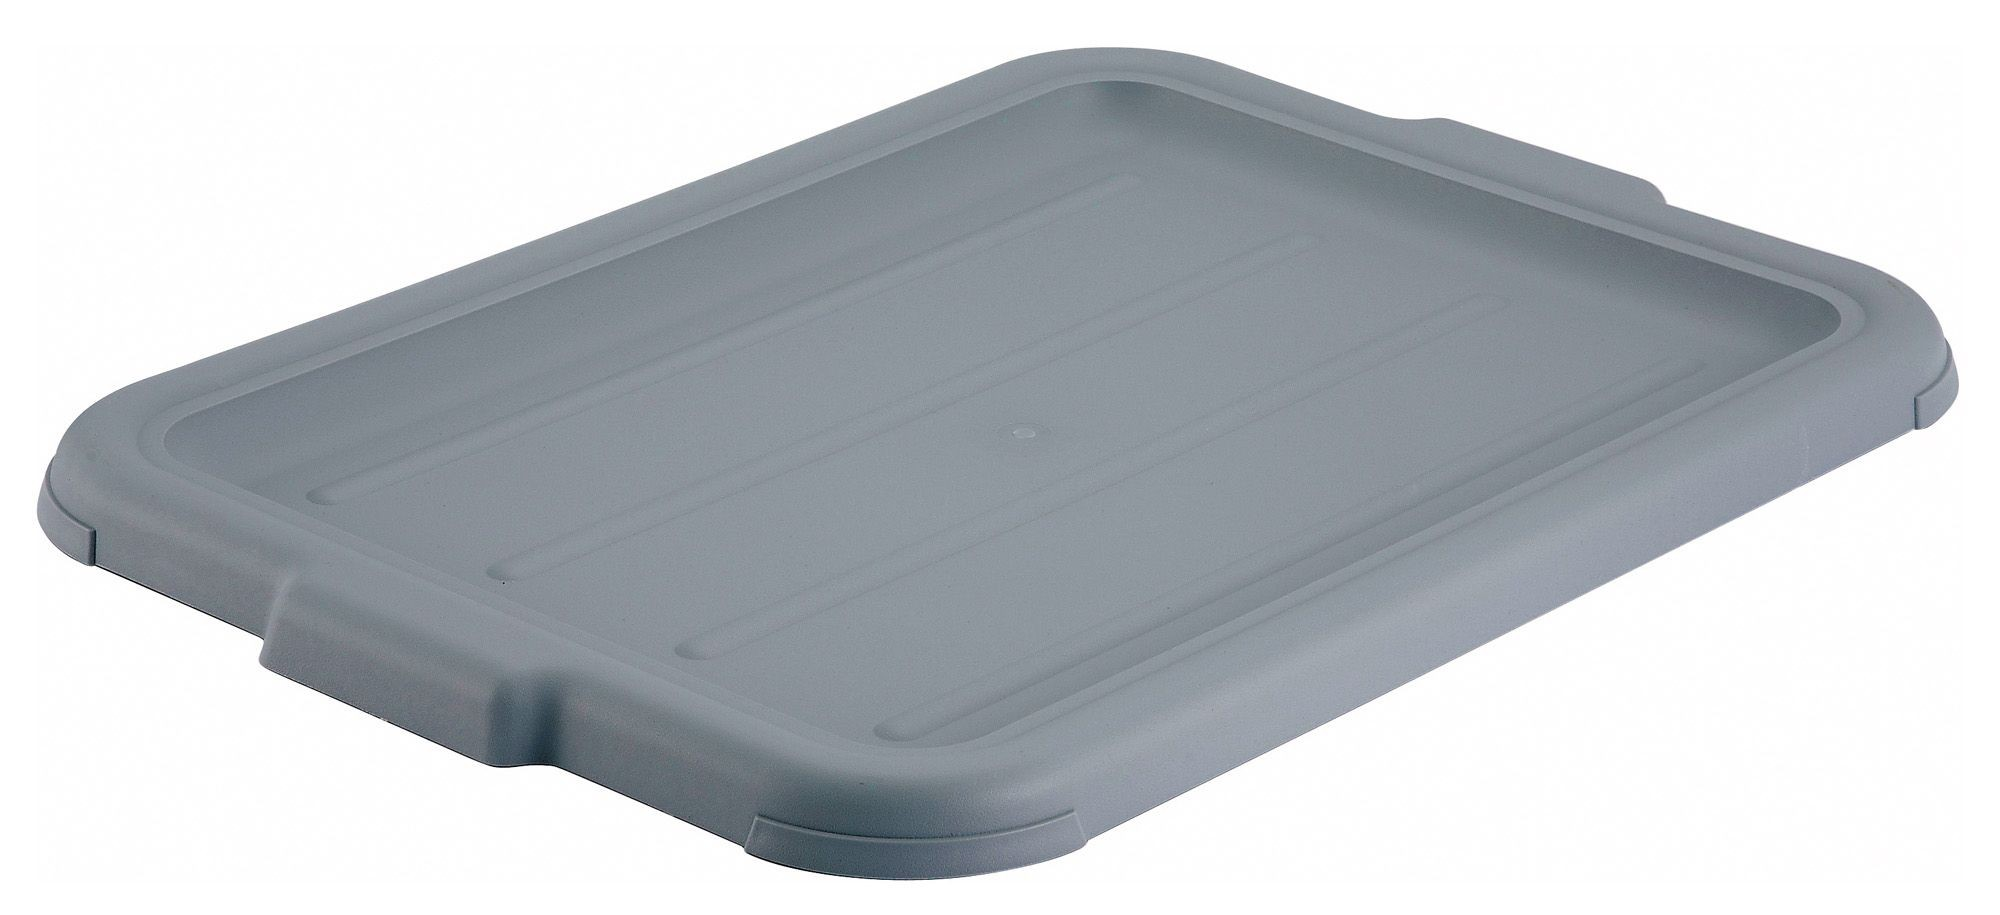 Winco PL-8C Gray Cover for PL-8